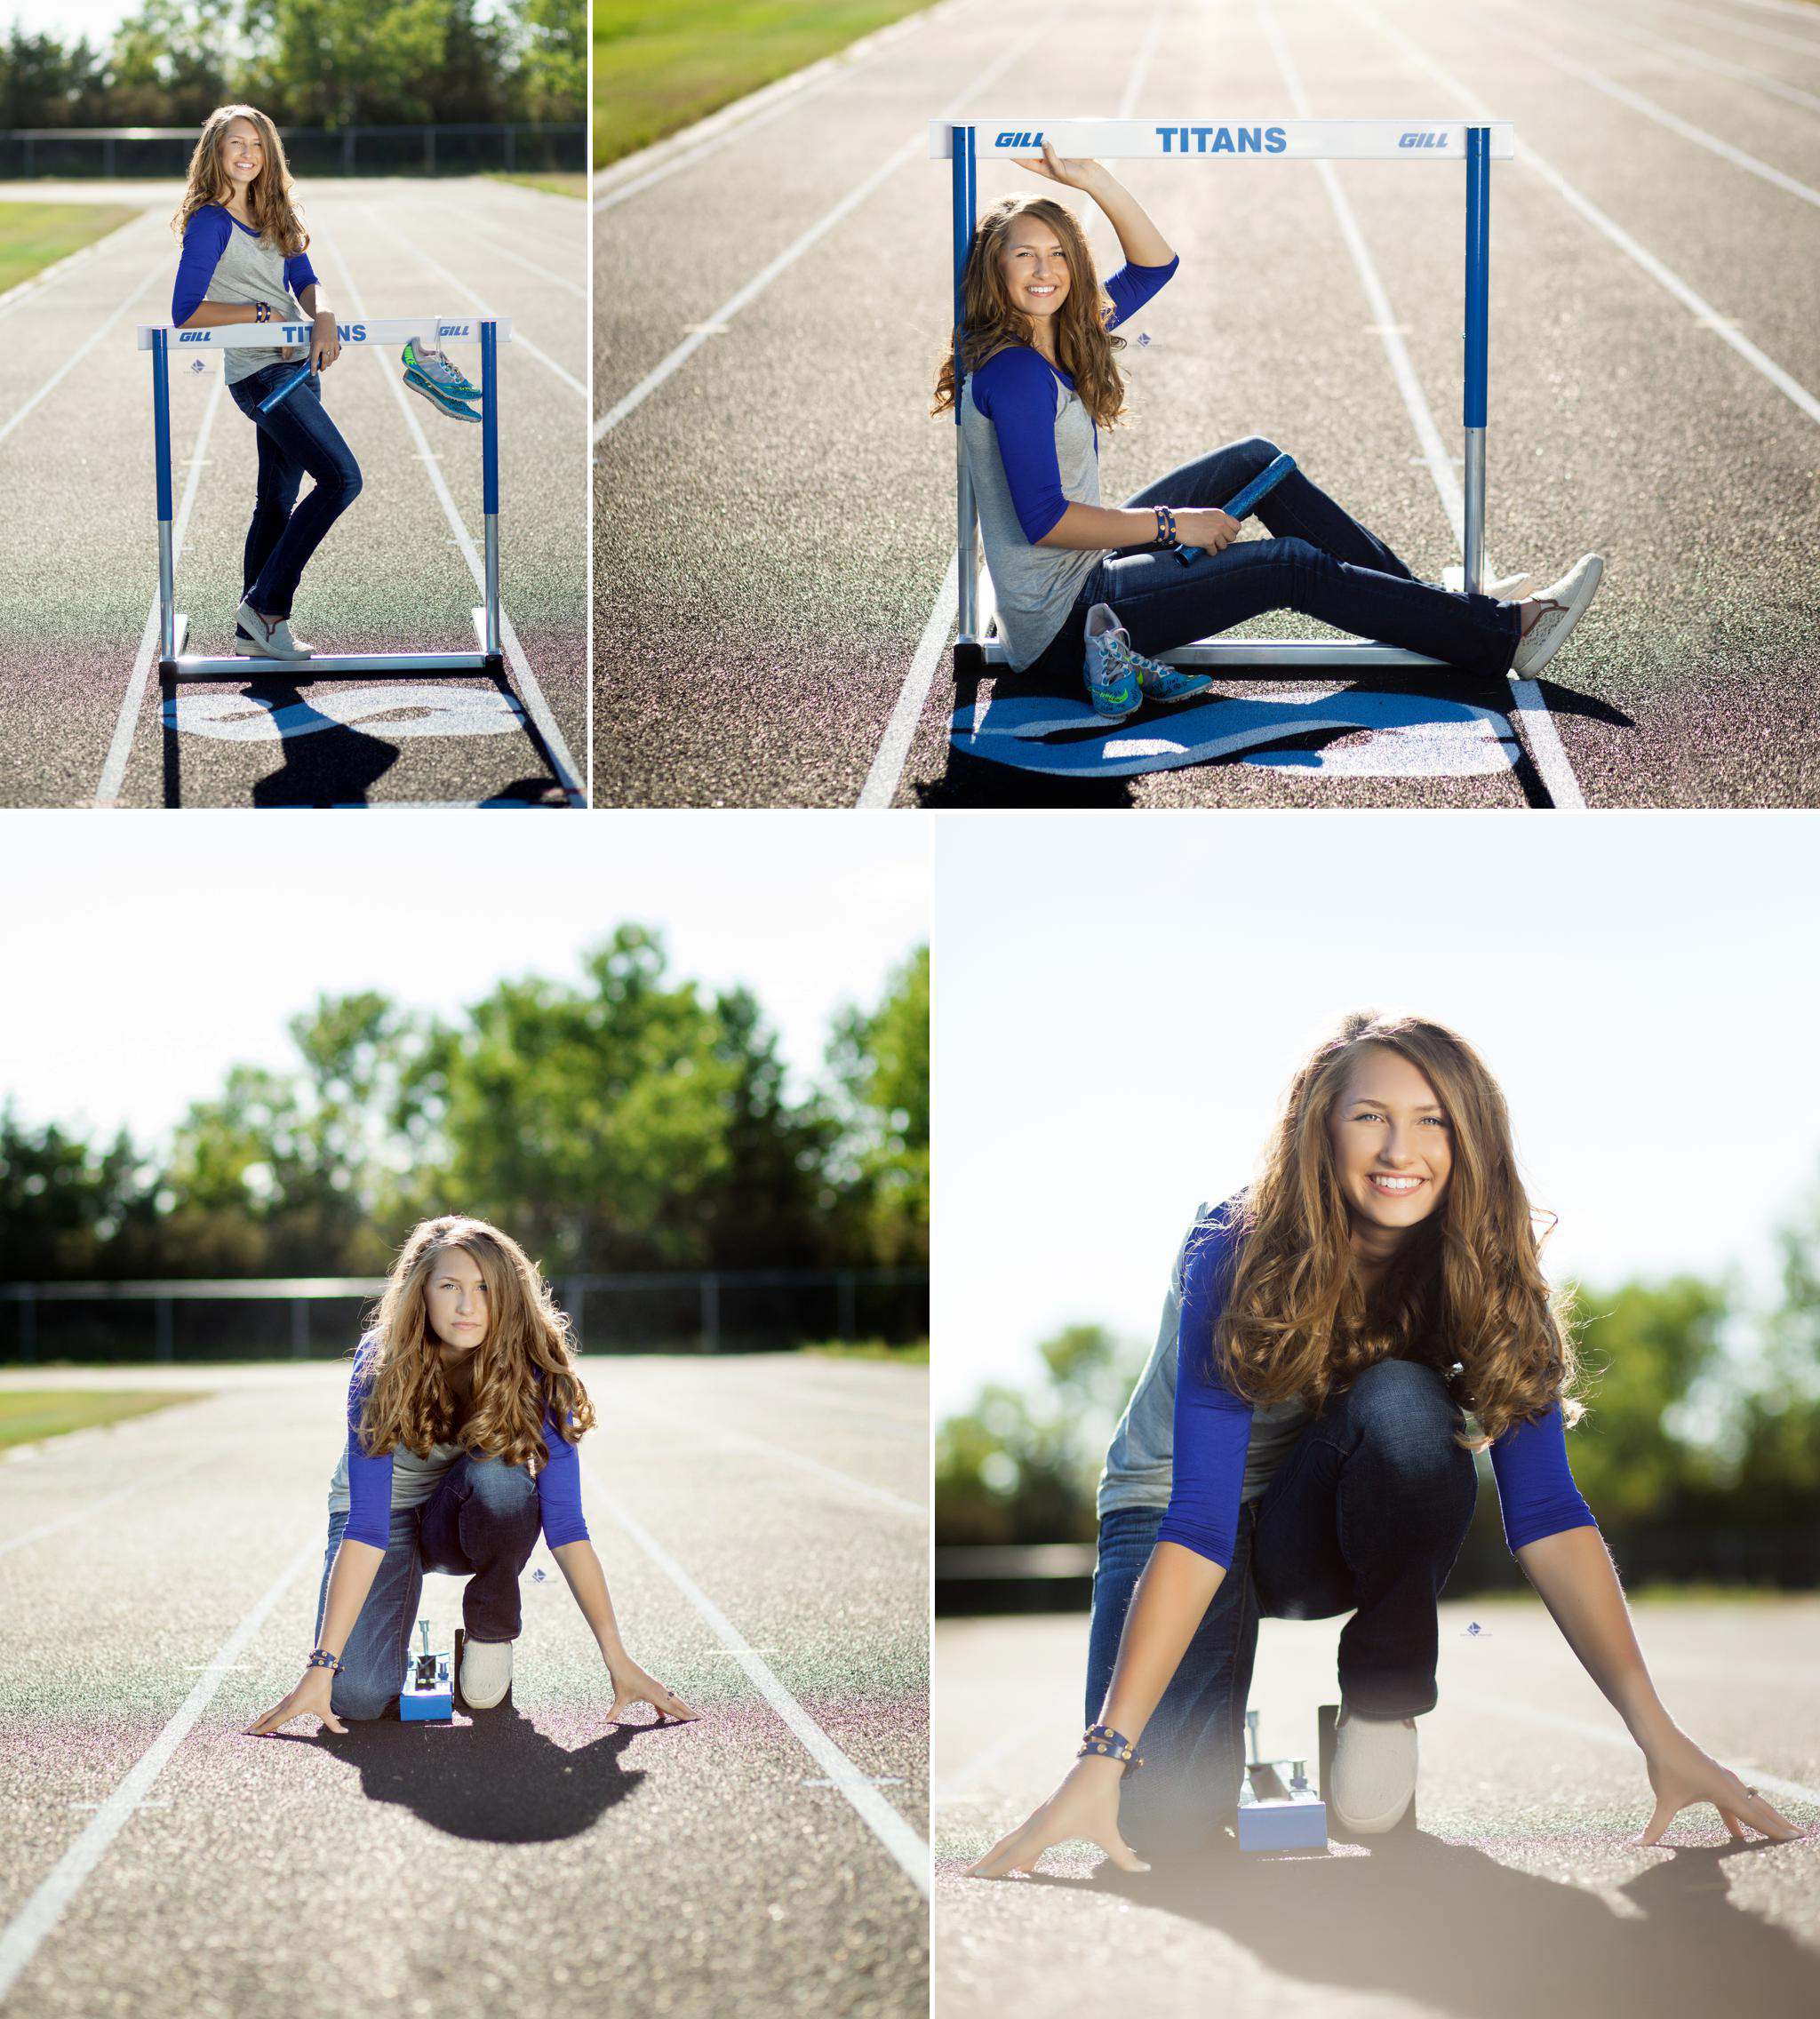 blonde senior girl in a blue and gray baseball tee posing on a high school track with hurdles